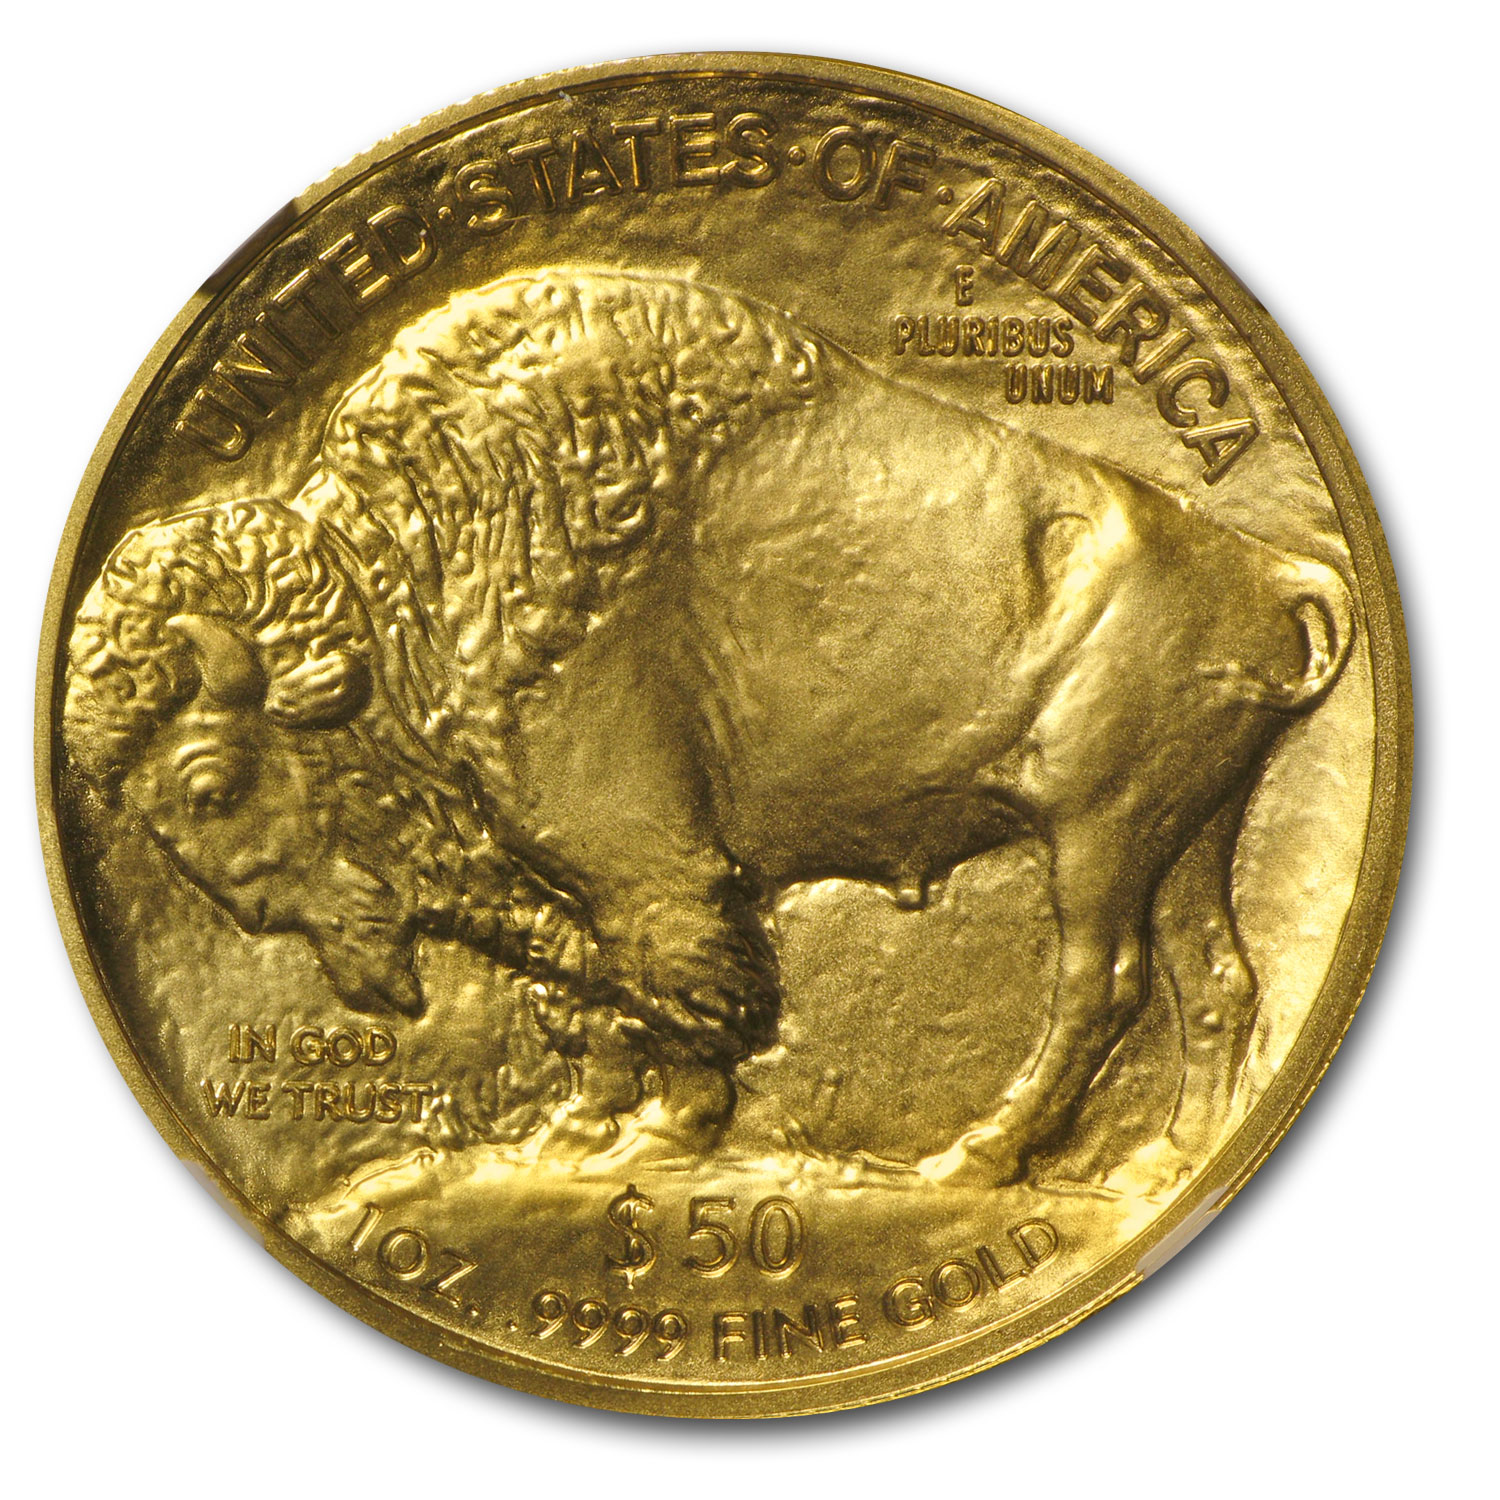 2013 1 oz Gold Buffalo MS-70 NGC (Buffalo Lable)